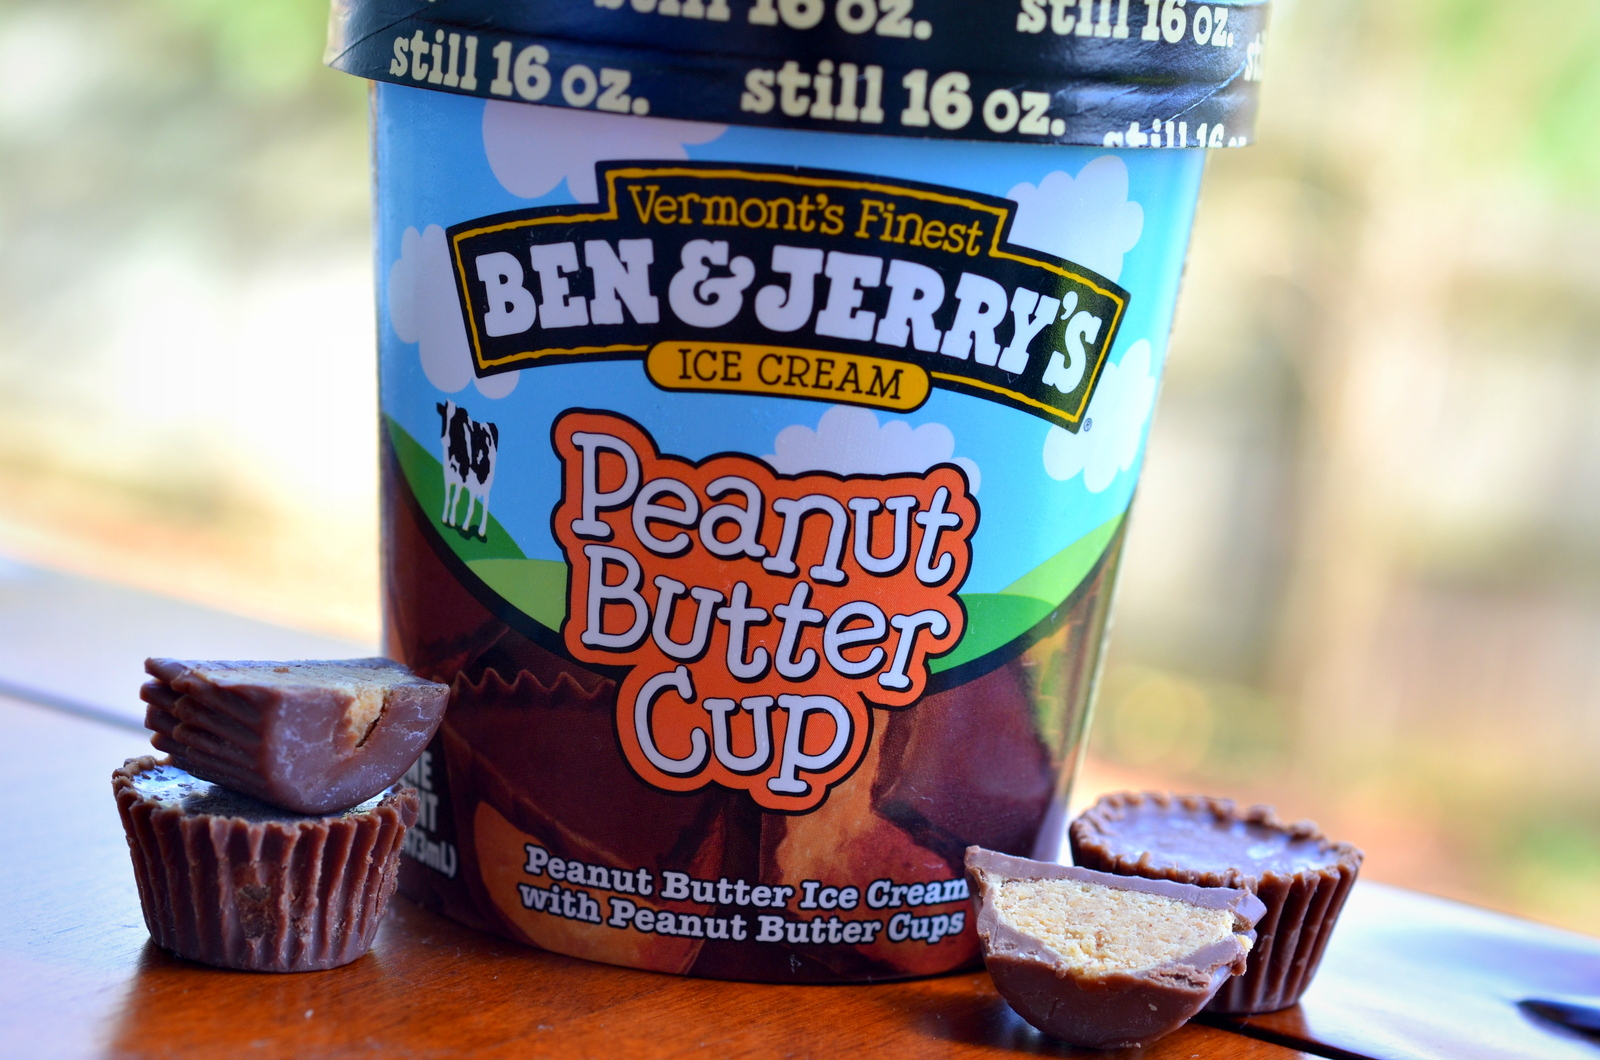 1-DSC_7612.JPG#peanut%20butter%20cup%20ben%20and%20jerrys%20icecream%201600x1060